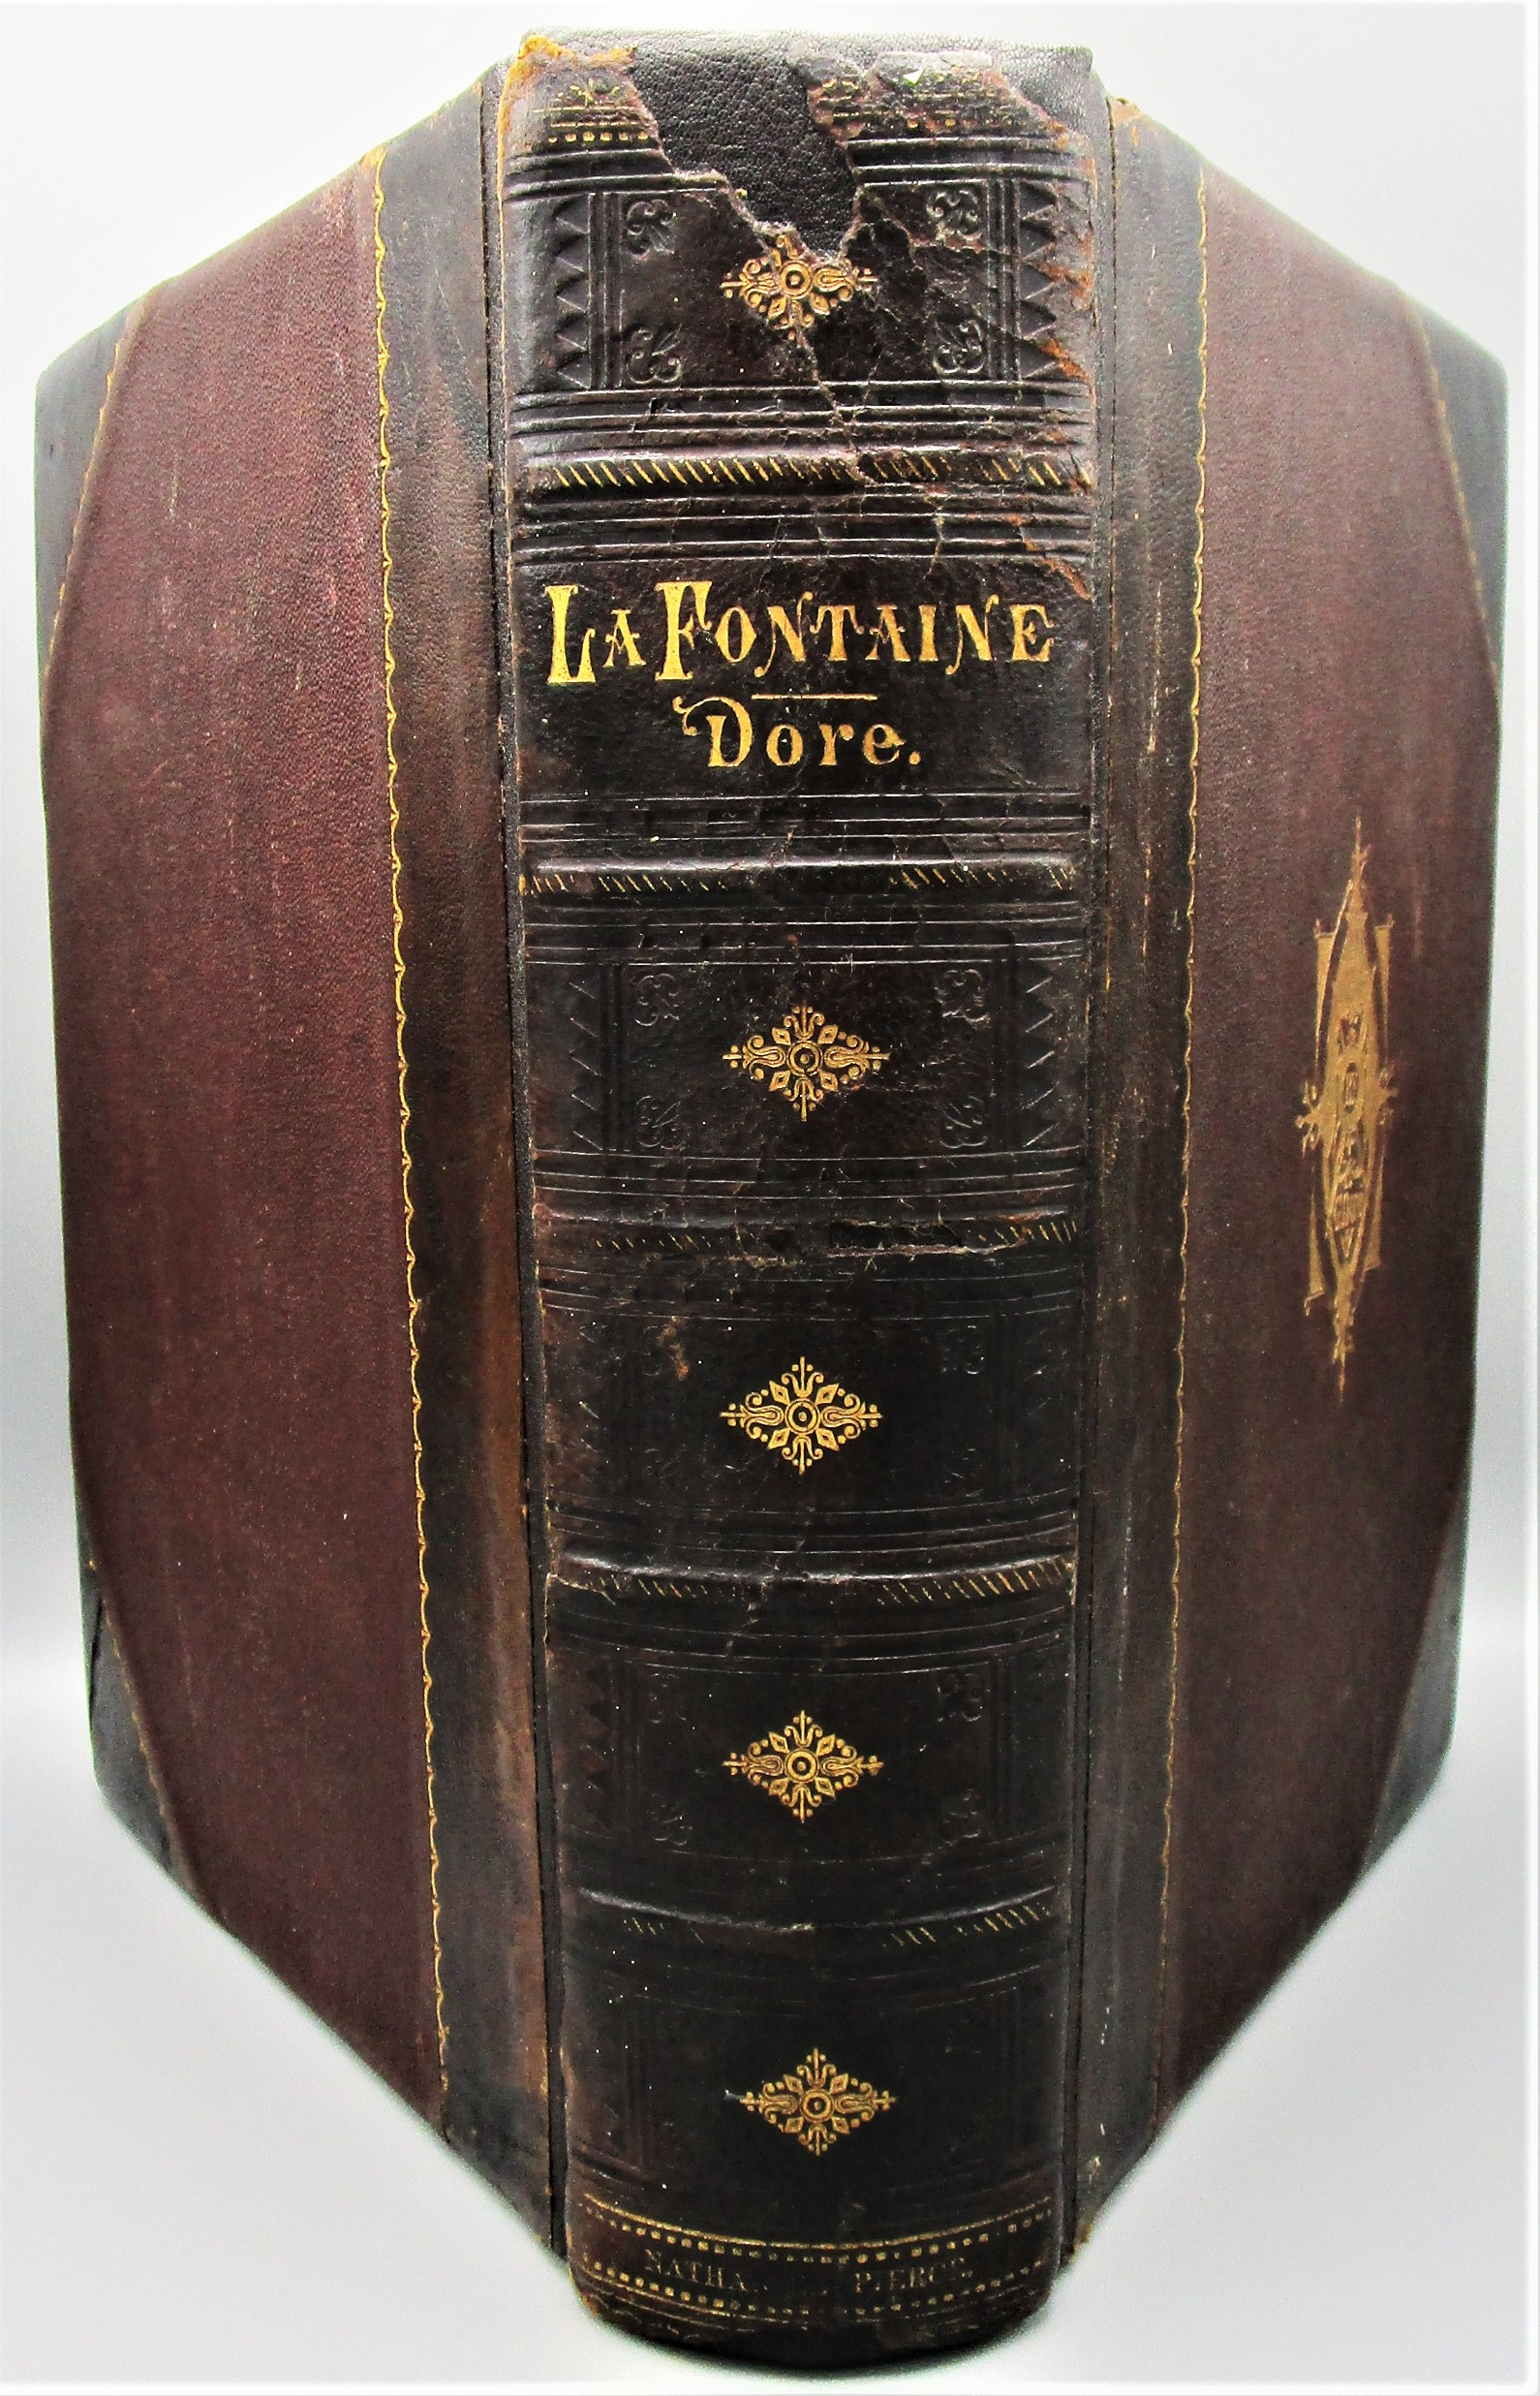 FABLES OF LA FONTAINE, illustr. by Gutave Dore - c.1870 [Fine Binding]